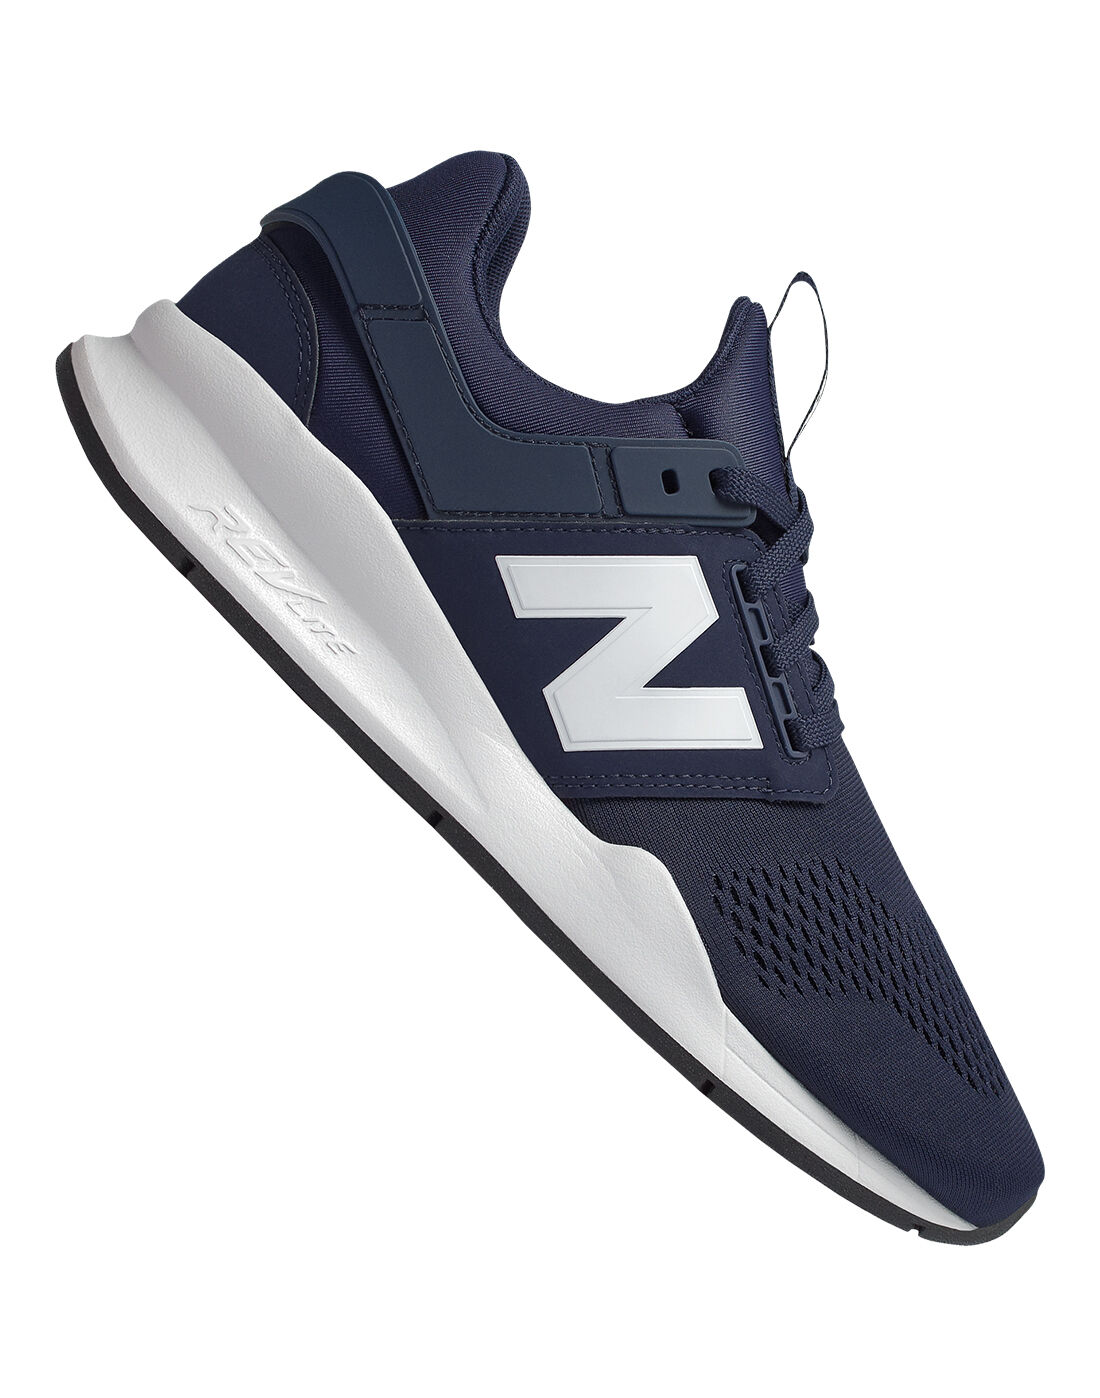 New Balance Mens 247 V2 Trainer - Navy | Life Style Sports IE